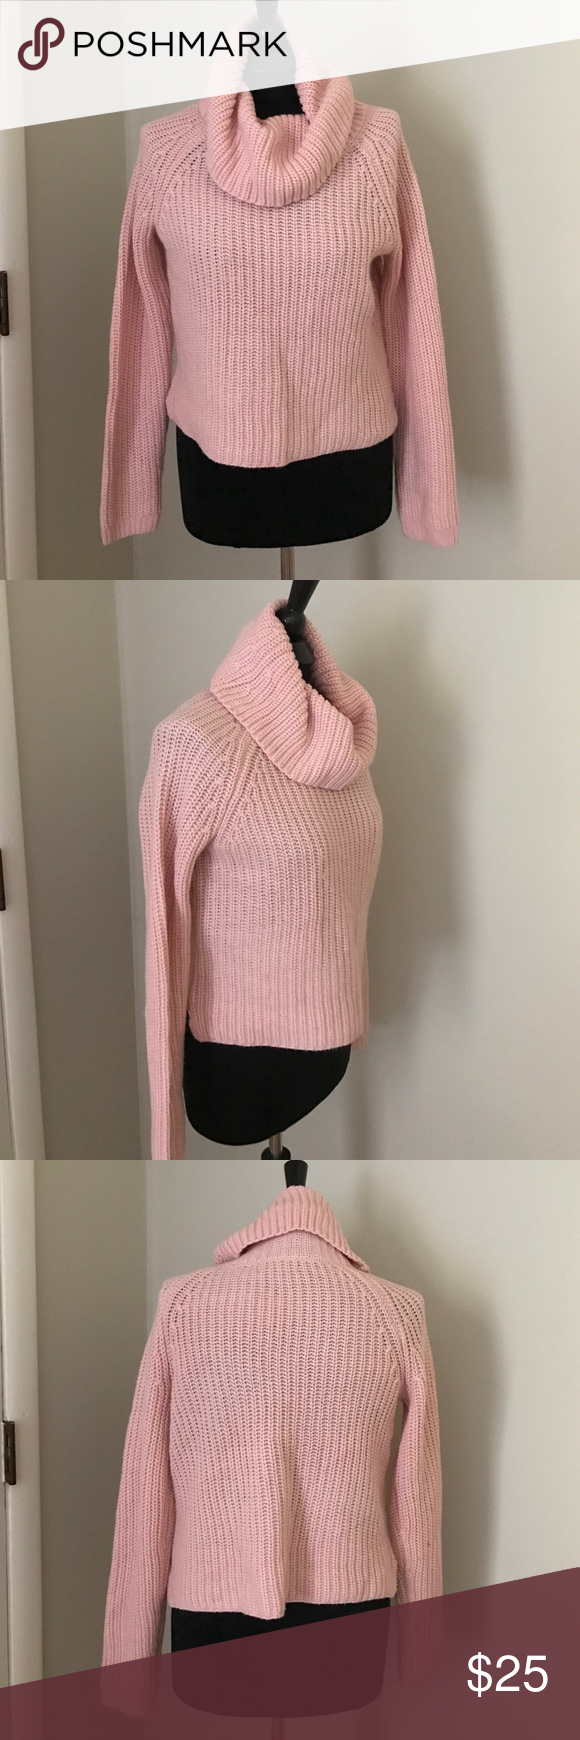 Cropped Pink Sweater Cozy and cute pink sweater. Slightly cropped ...